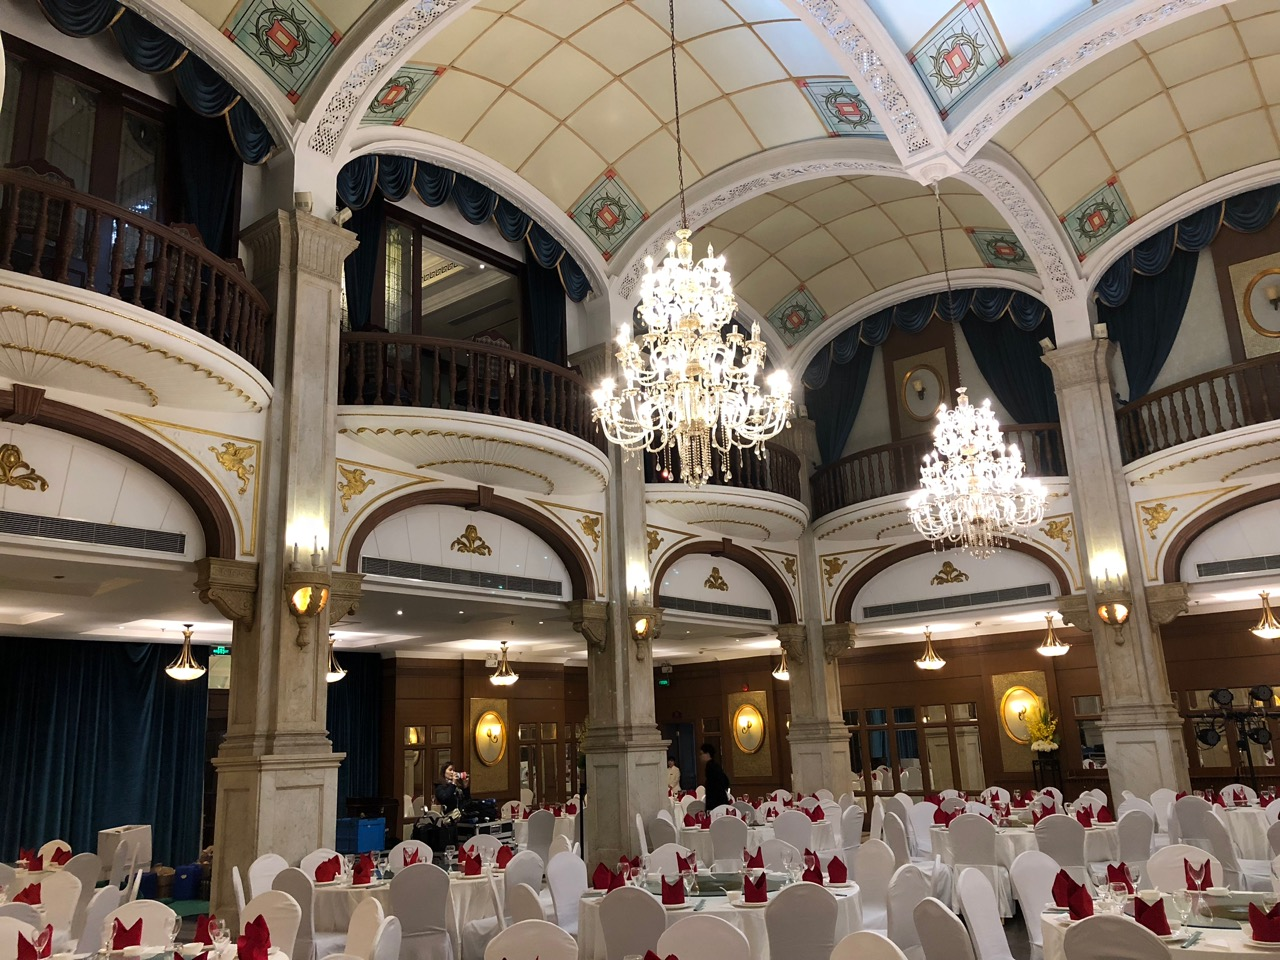 The ballroom, once the center of social life for high society in the city, now used for Chinese wedding banquets